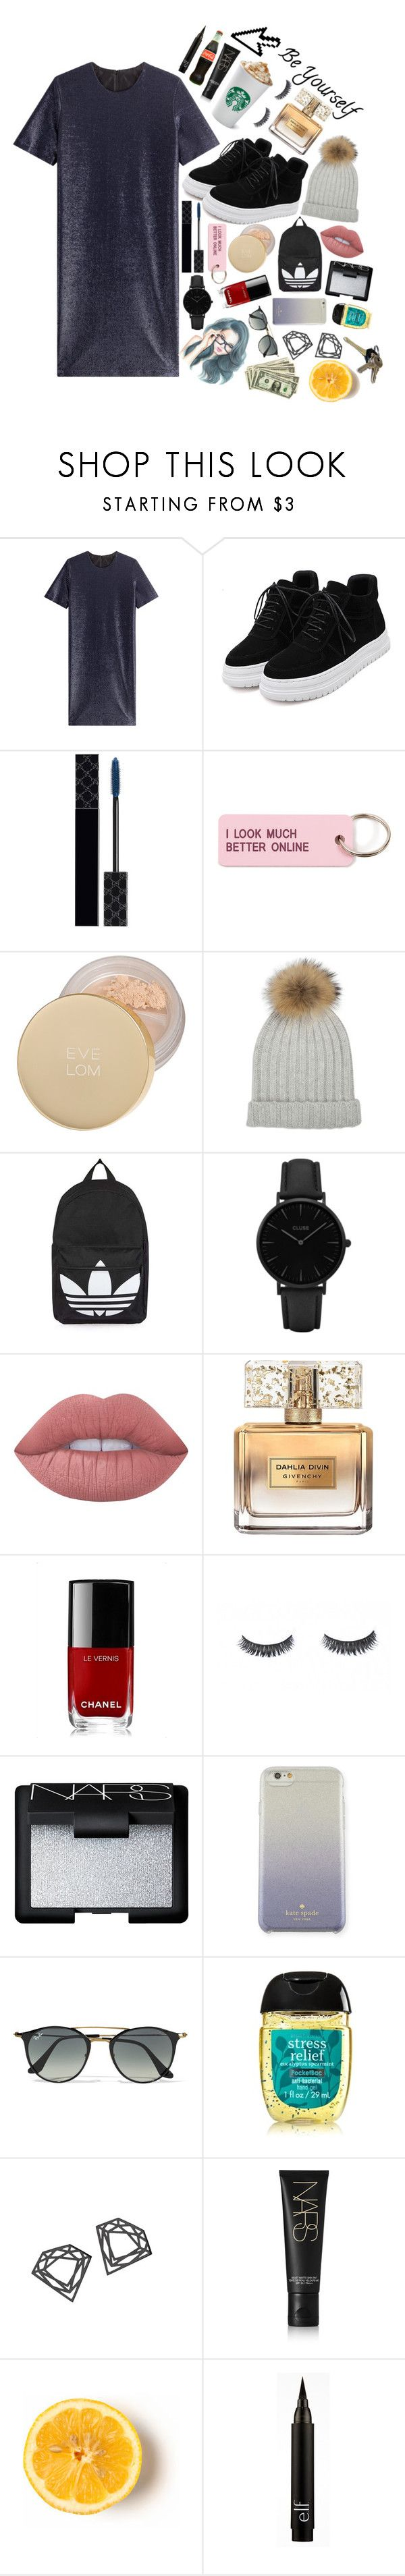 """Untitled #100"" by dancewithshira ❤ liked on Polyvore featuring Jil Sander, WithChic, Gucci, Various Projects, Eve Lom, Topshop, CLUSE, Lime Crime, Givenchy and Chanel"